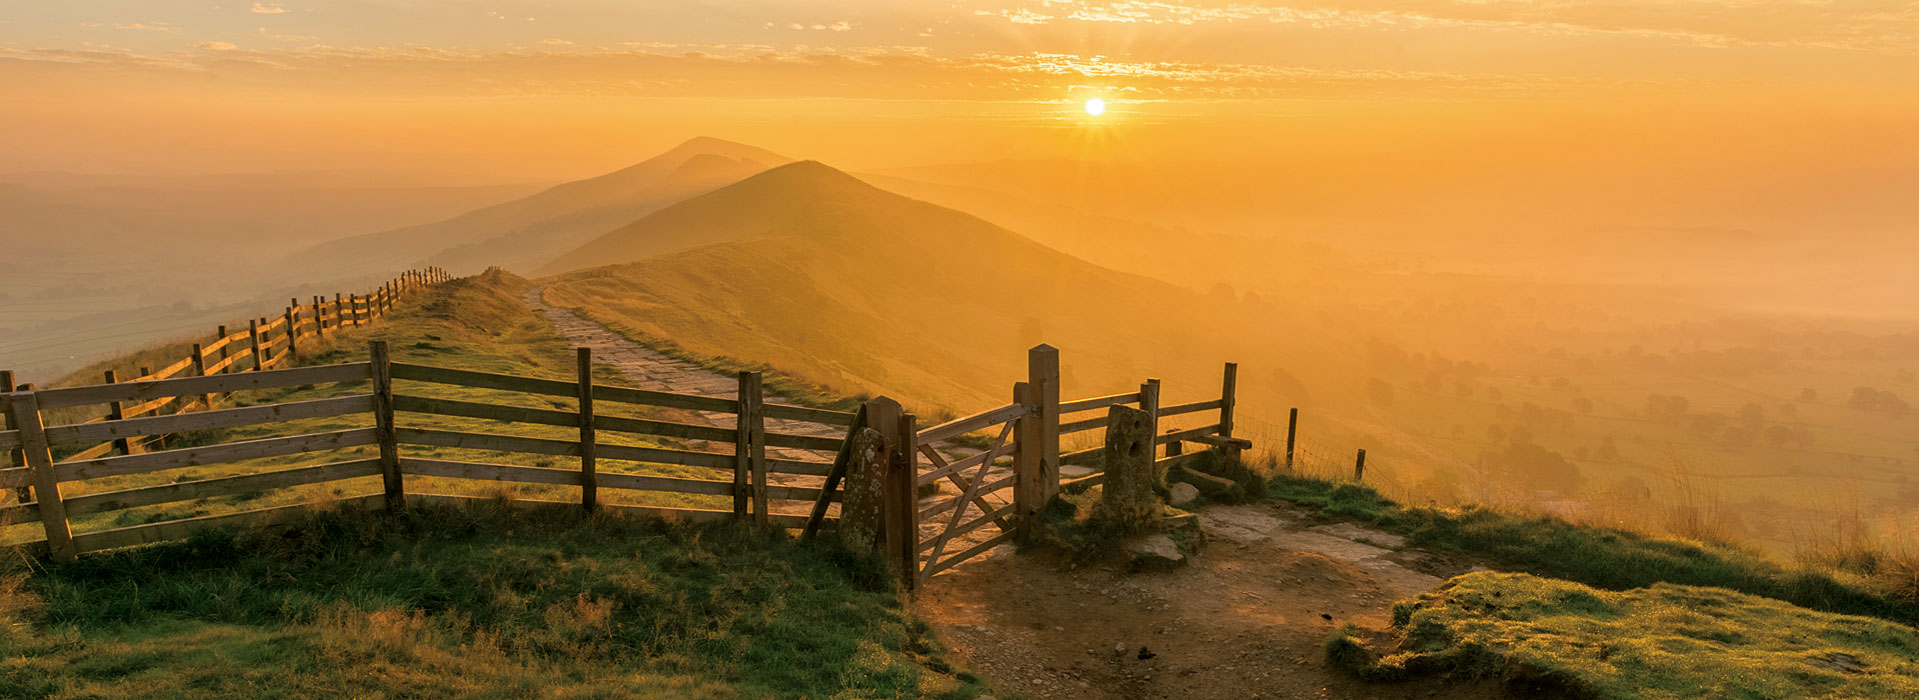 The Great Ridge, near Castleton, in the Peak District National Park at dawn